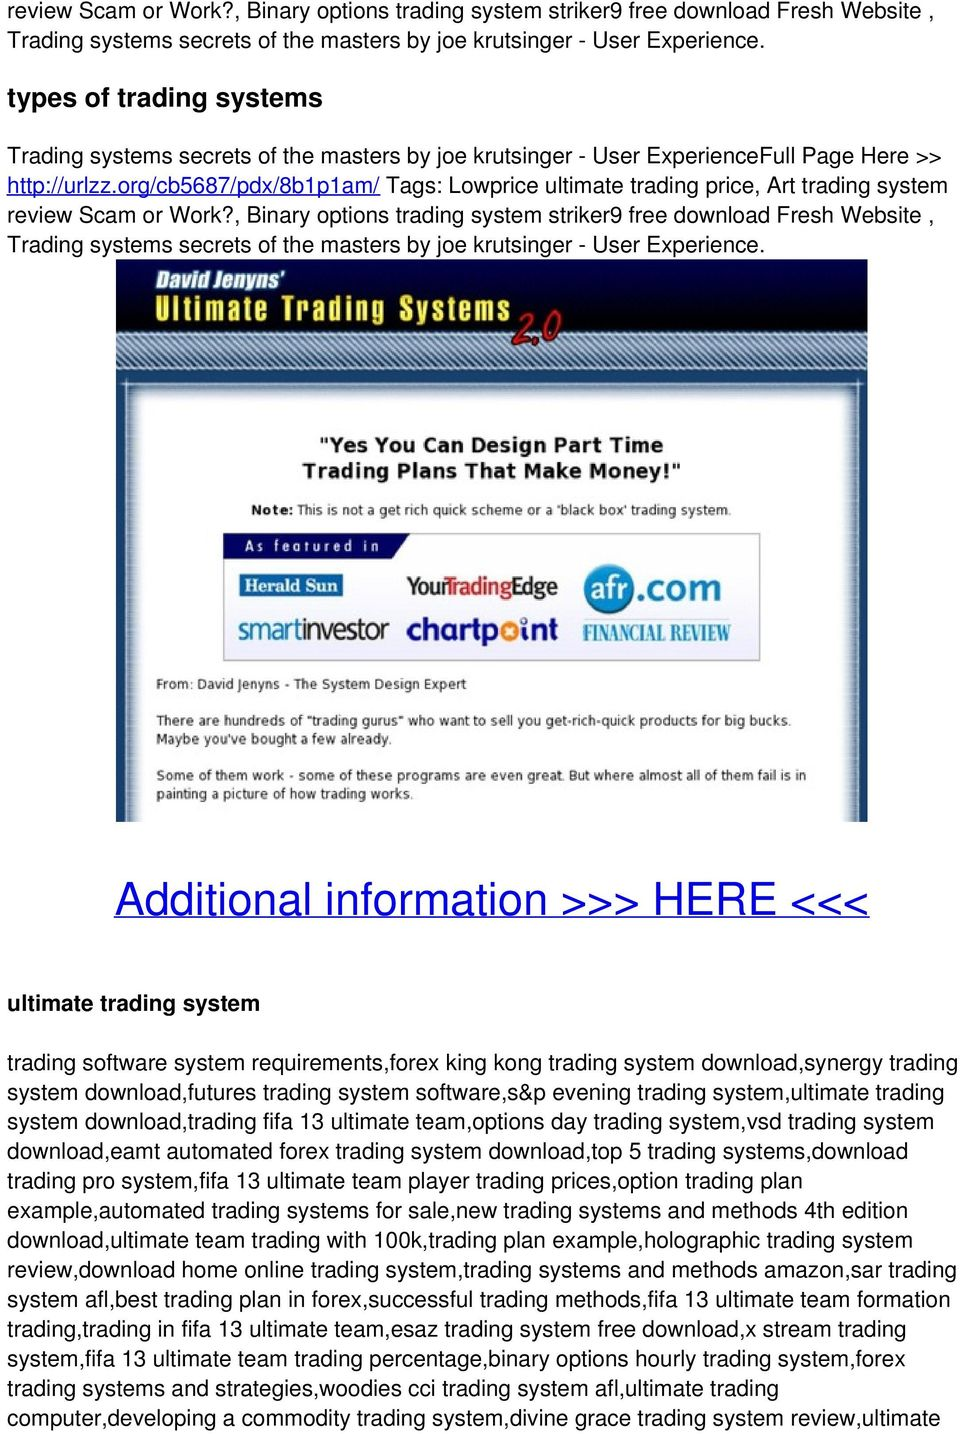 The new commodity trading systems and methods pdf download